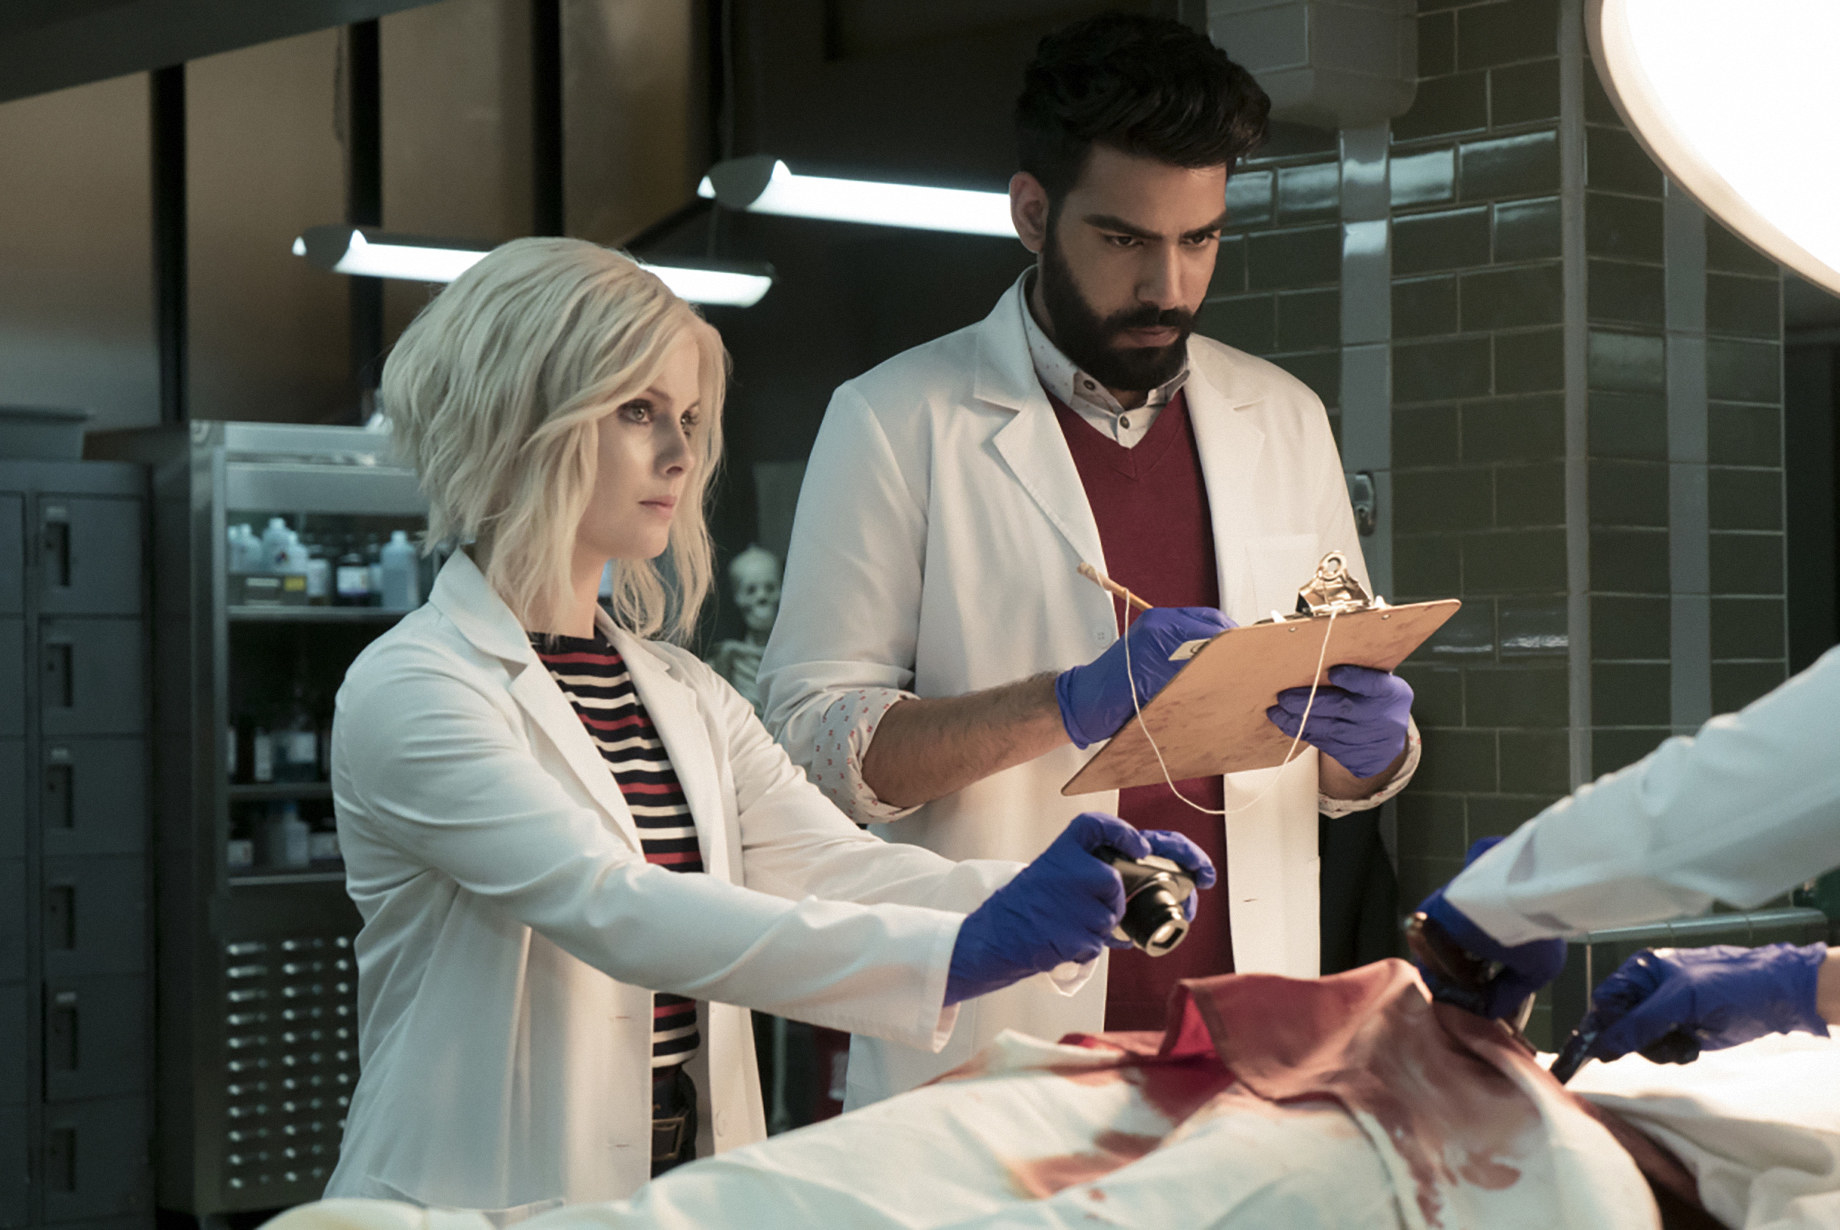 Two doctors perform an autopsy